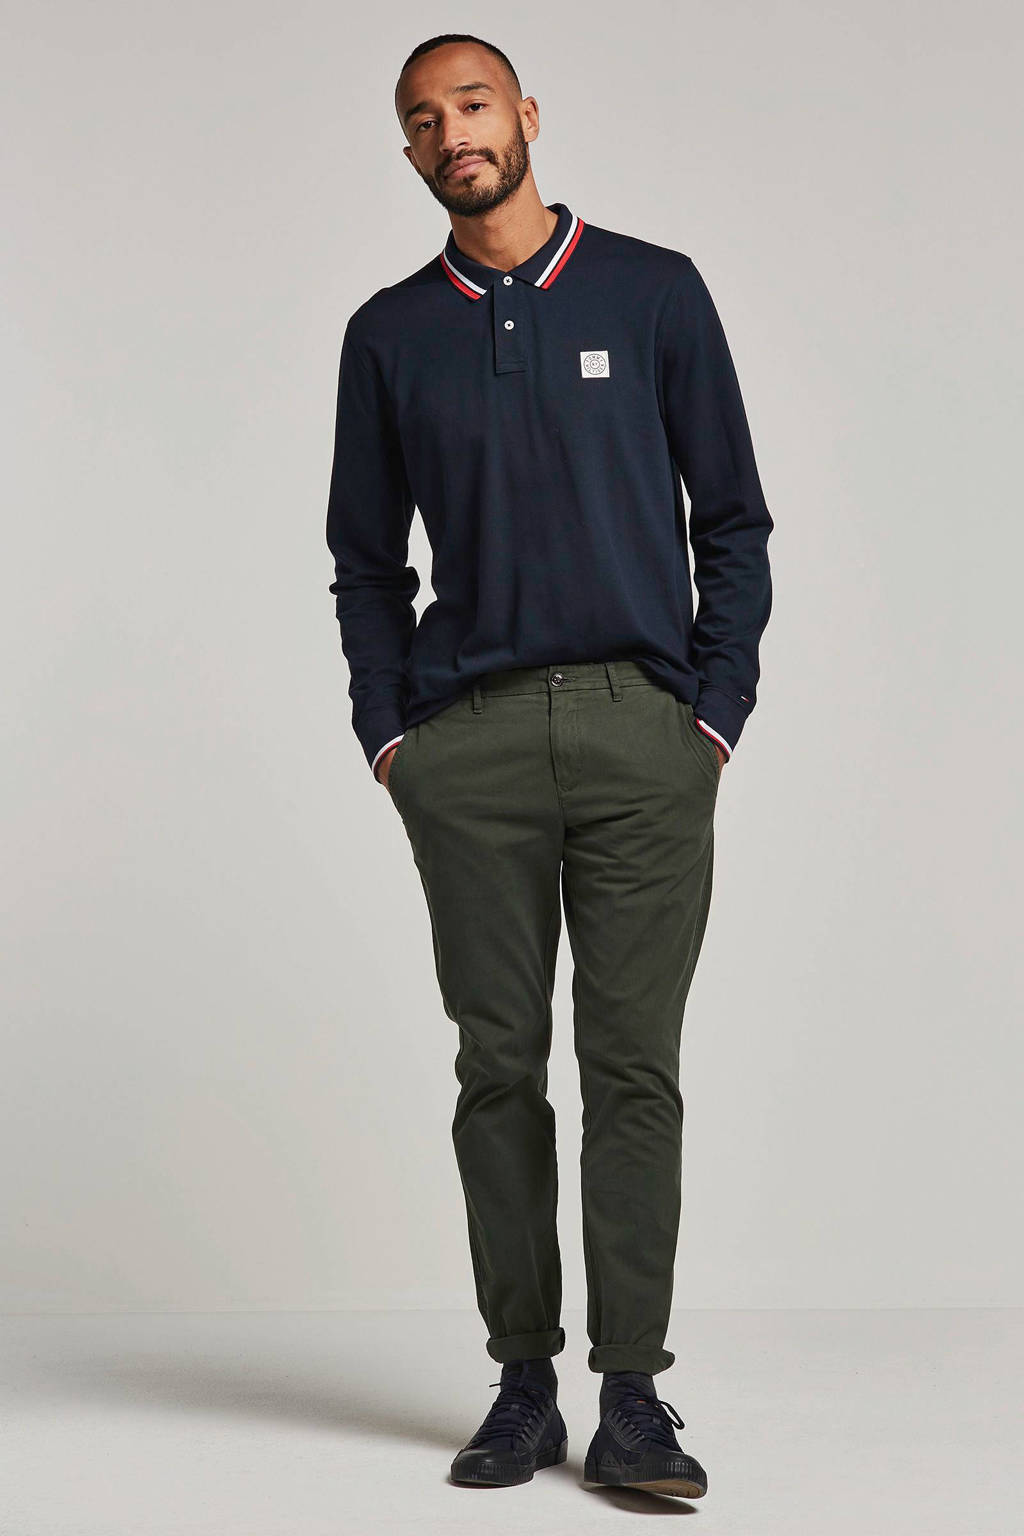 Tommy Hilfiger polo, Donkerblauw